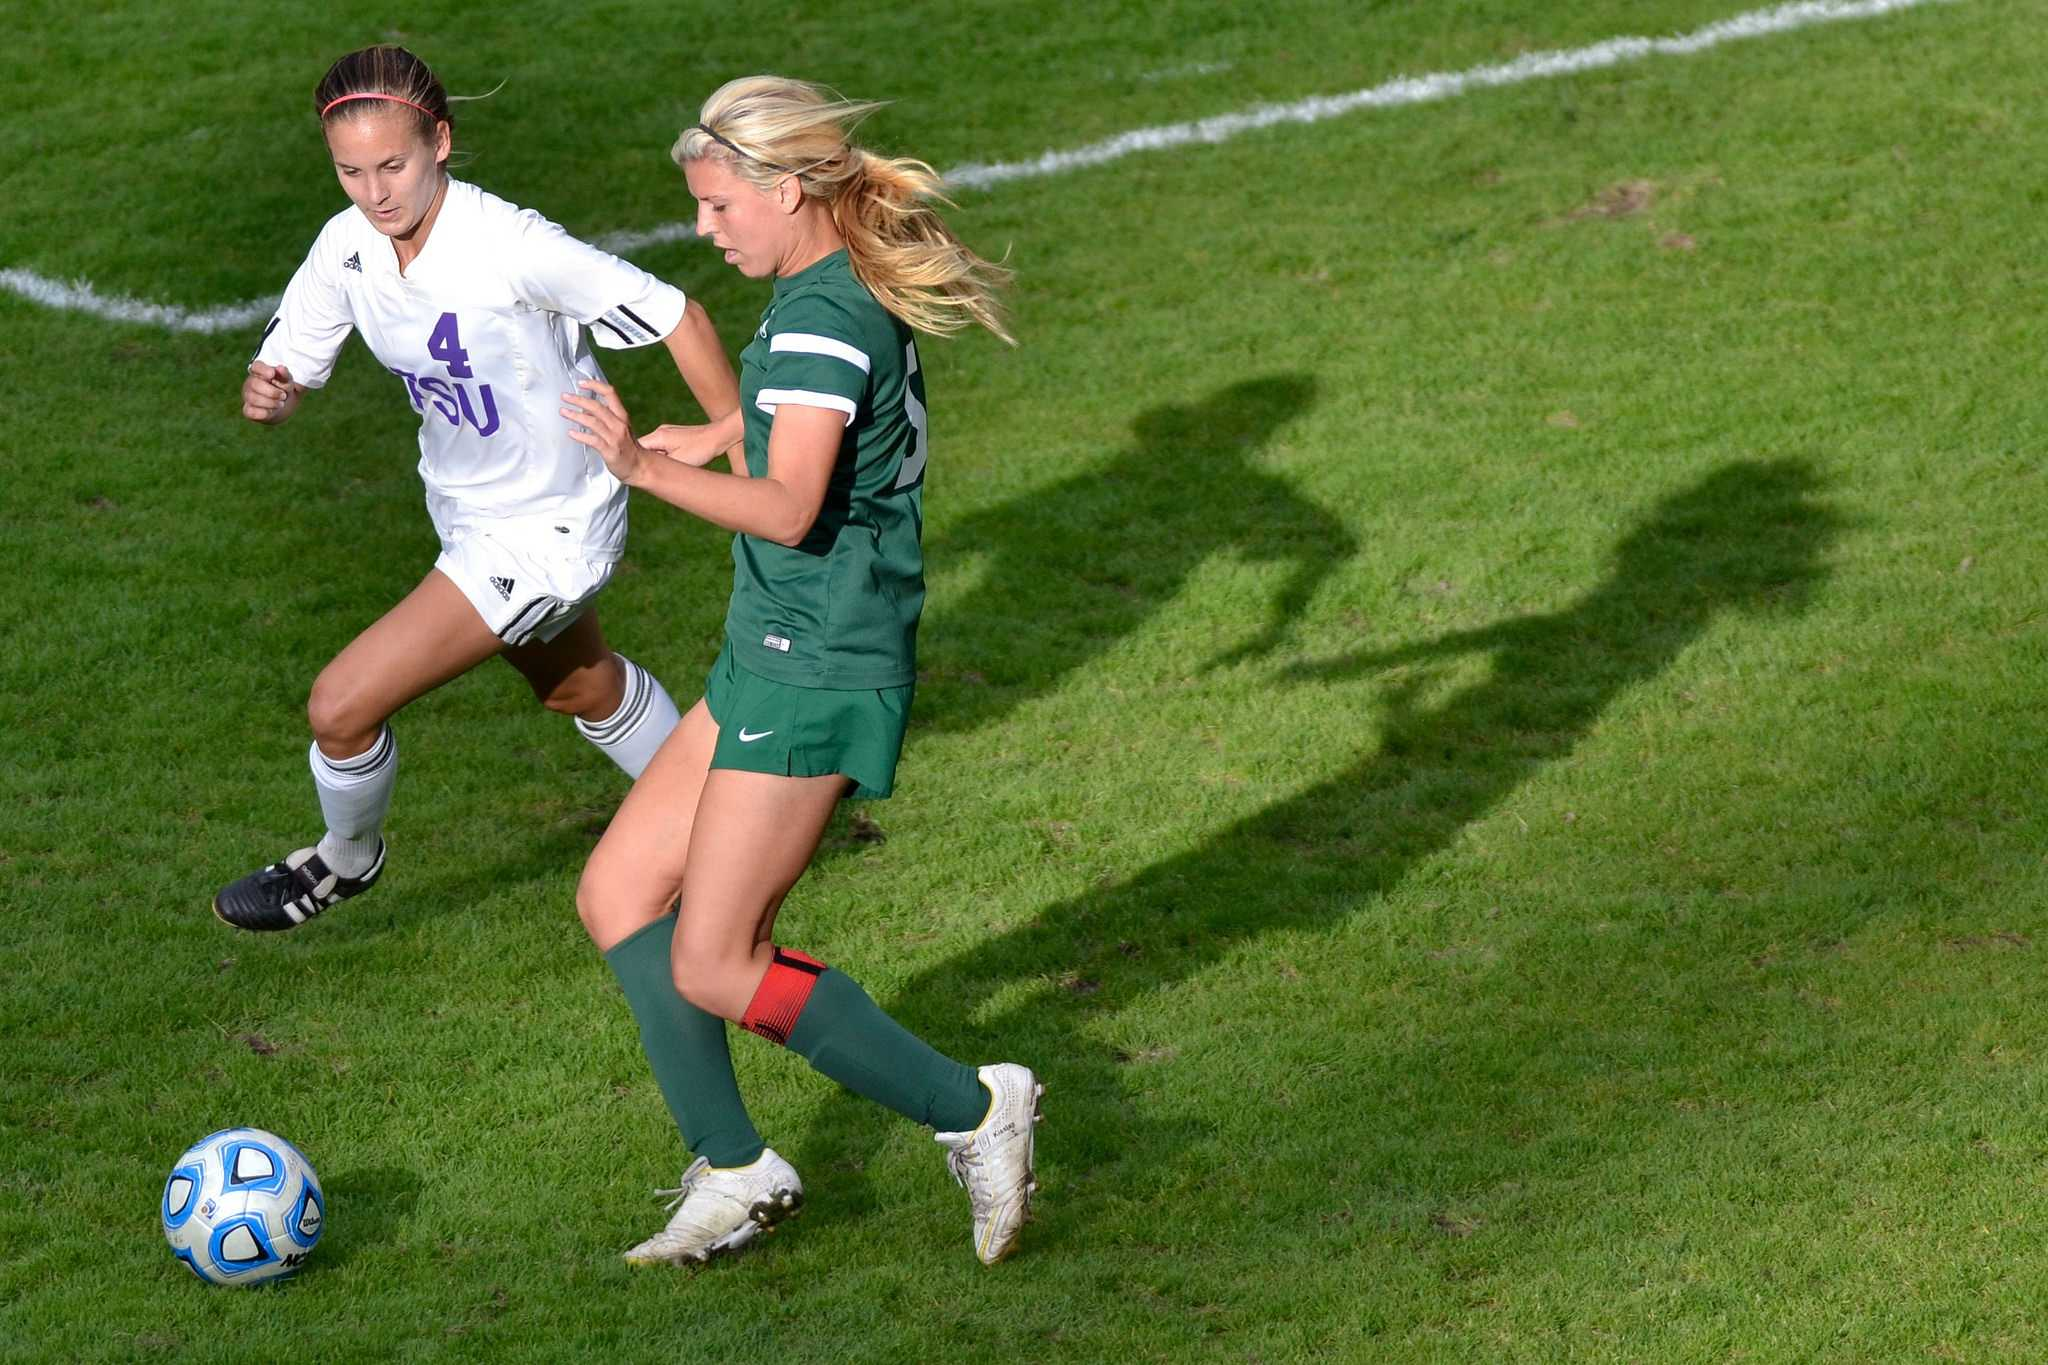 SF State player Autumn Fox tries to steal the ball from Megan Kisslan during a home game against Cal Poly Pomona Friday, Oct. 17, 2014. The Gators lost 1-0 against the Broncos.